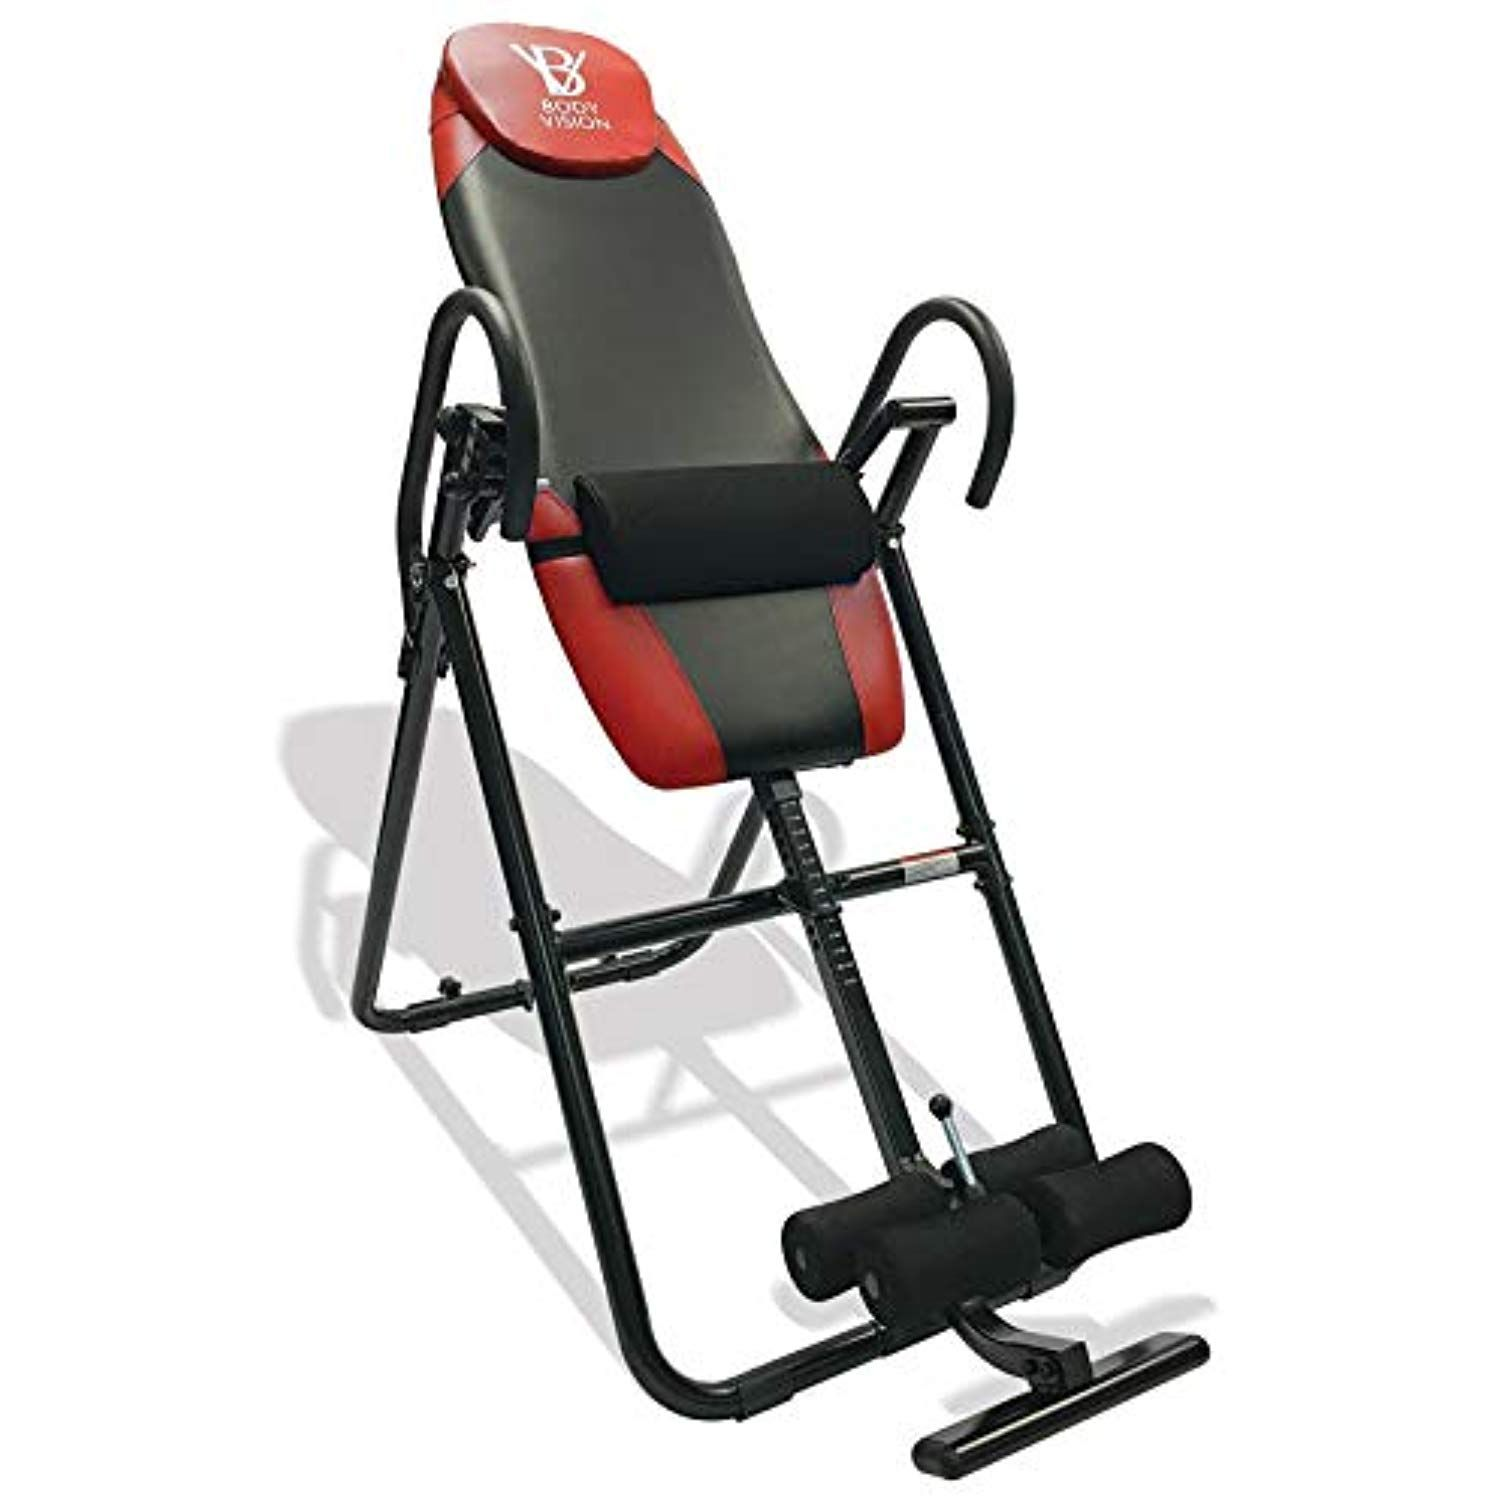 Body Vision It9825 Premium Inversion Table With Adjustable Head